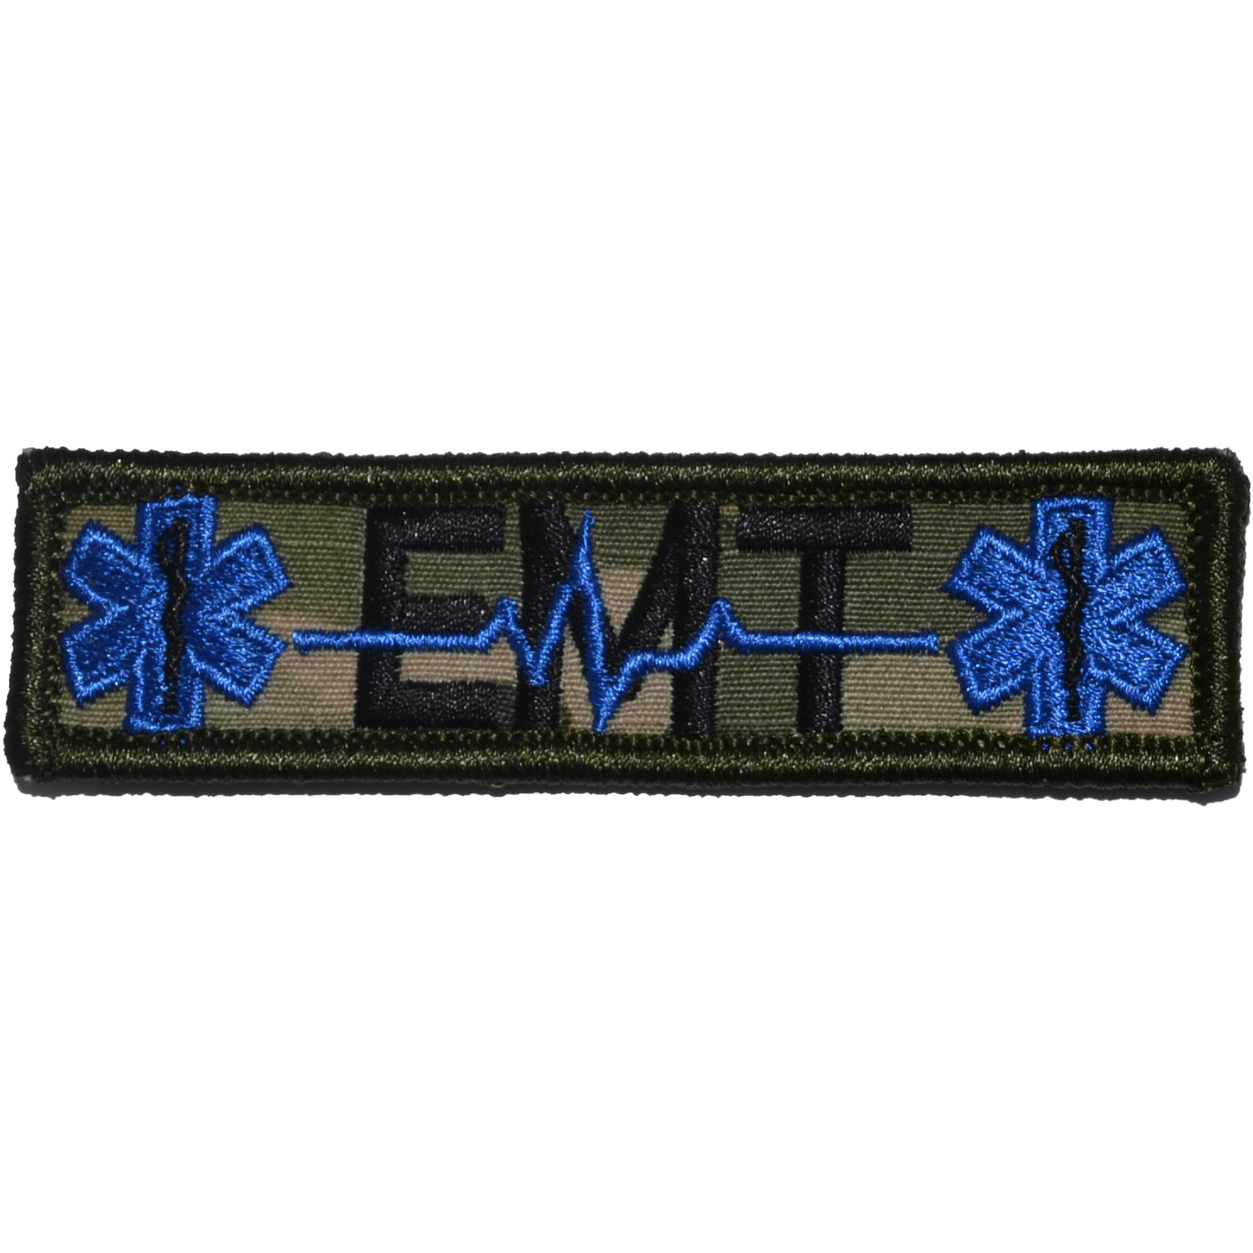 Tactical Gear Junkie Patches MultiCam EMT Heartbeat and Stars of Life - 1x3.75 Patch